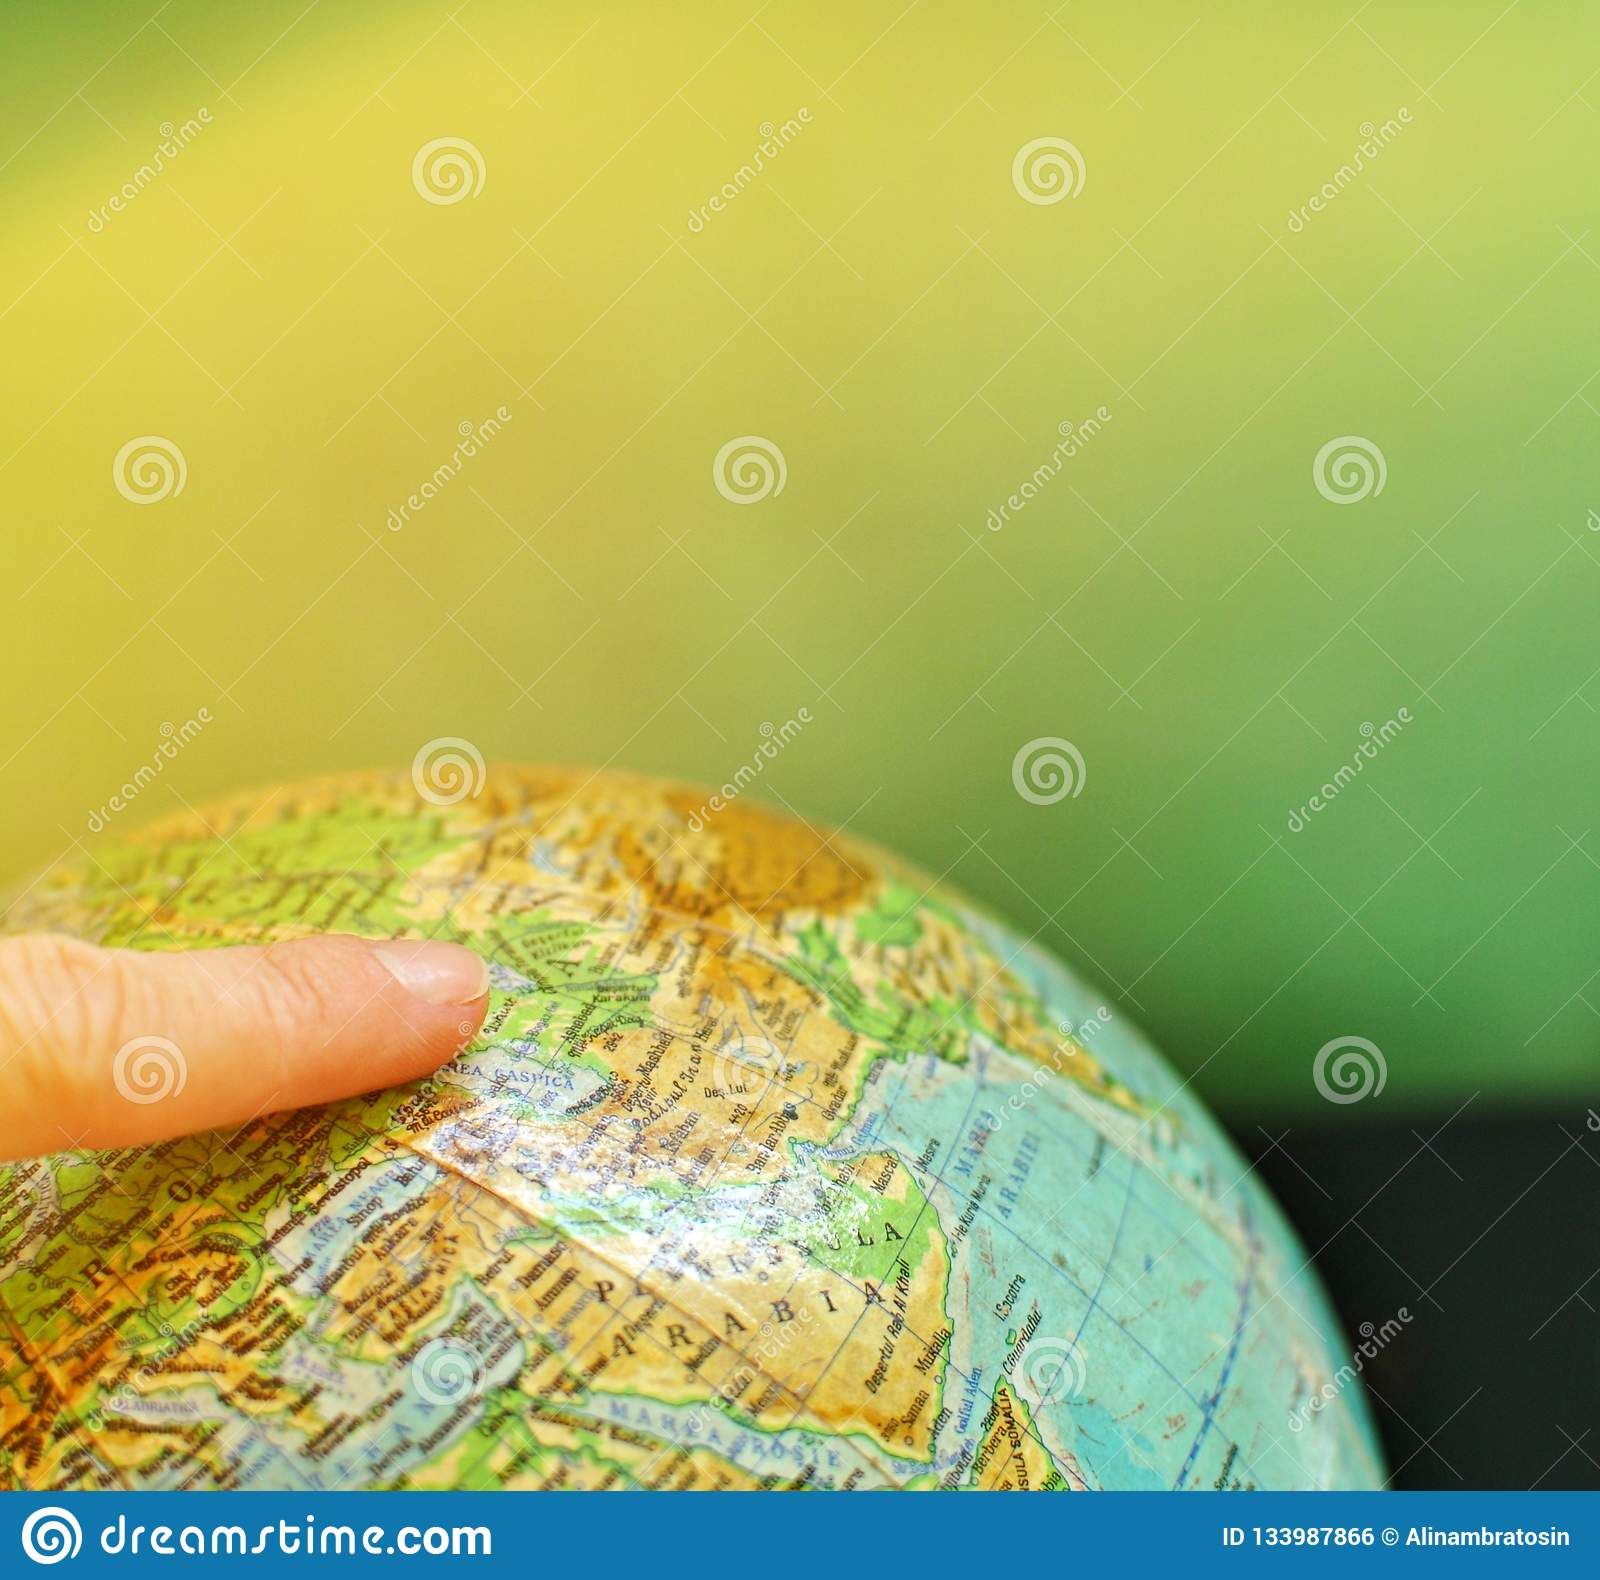 A globe world map with an index finger on it